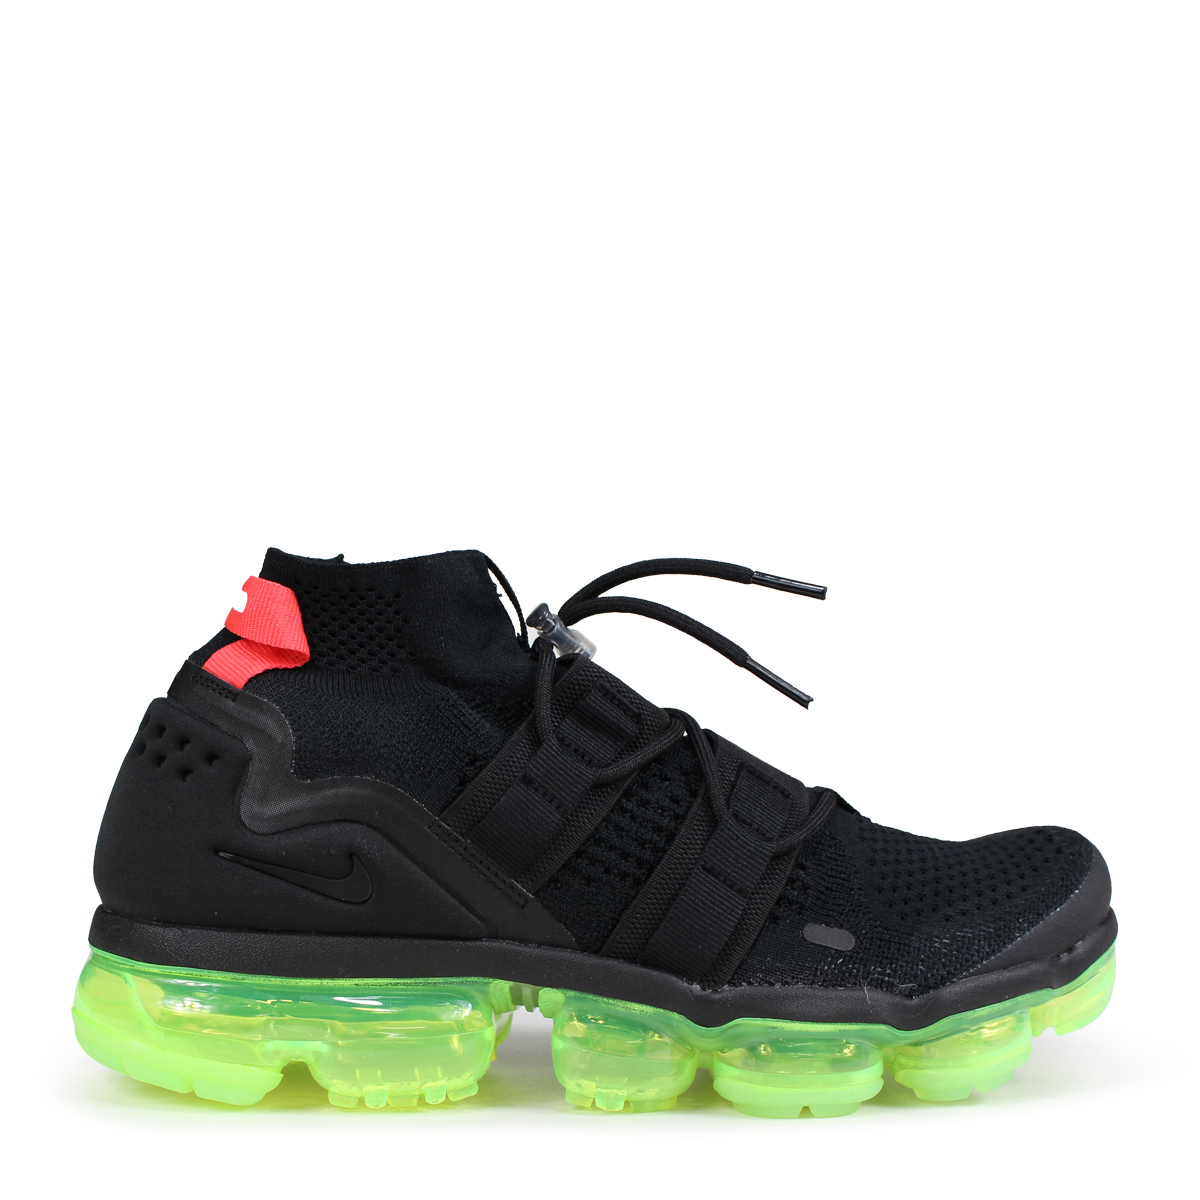 newest a885a 56d9e NIKE AIR VAPORMAX FLYKNIT UTILITY Nike air vapor max fried food knit  sneakers men AH6834-007 black [load planned Shinnyu load in reservation  product ...